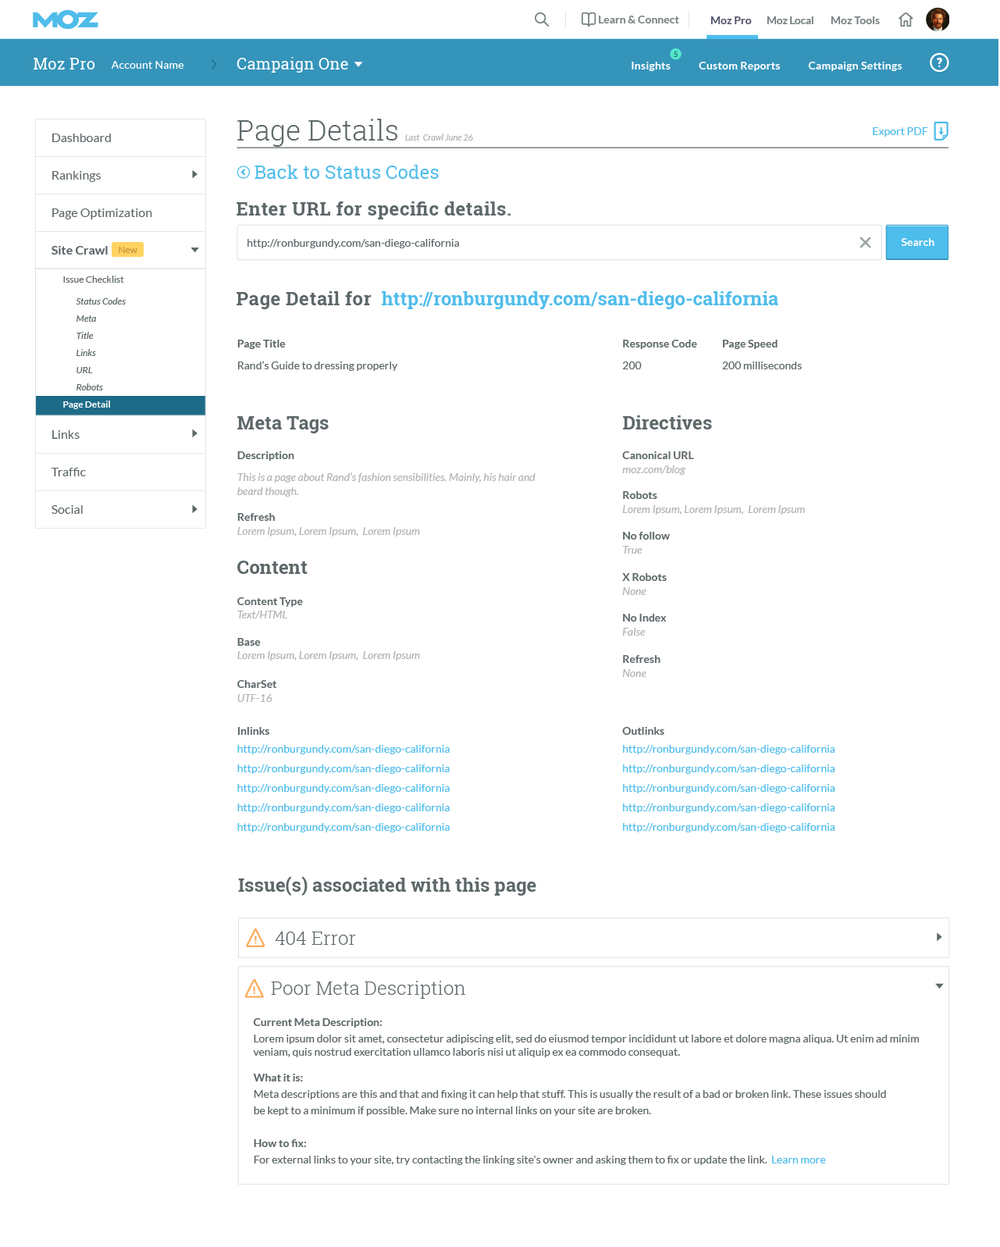 """We are now far down the rabbit hole. This is page detail. As a customer, if I were to click into the table items """"page detail"""" icon within the issue level I would end up here! I am now looking at a solitary page and all of its contributing information to this hectic site ecosystem."""